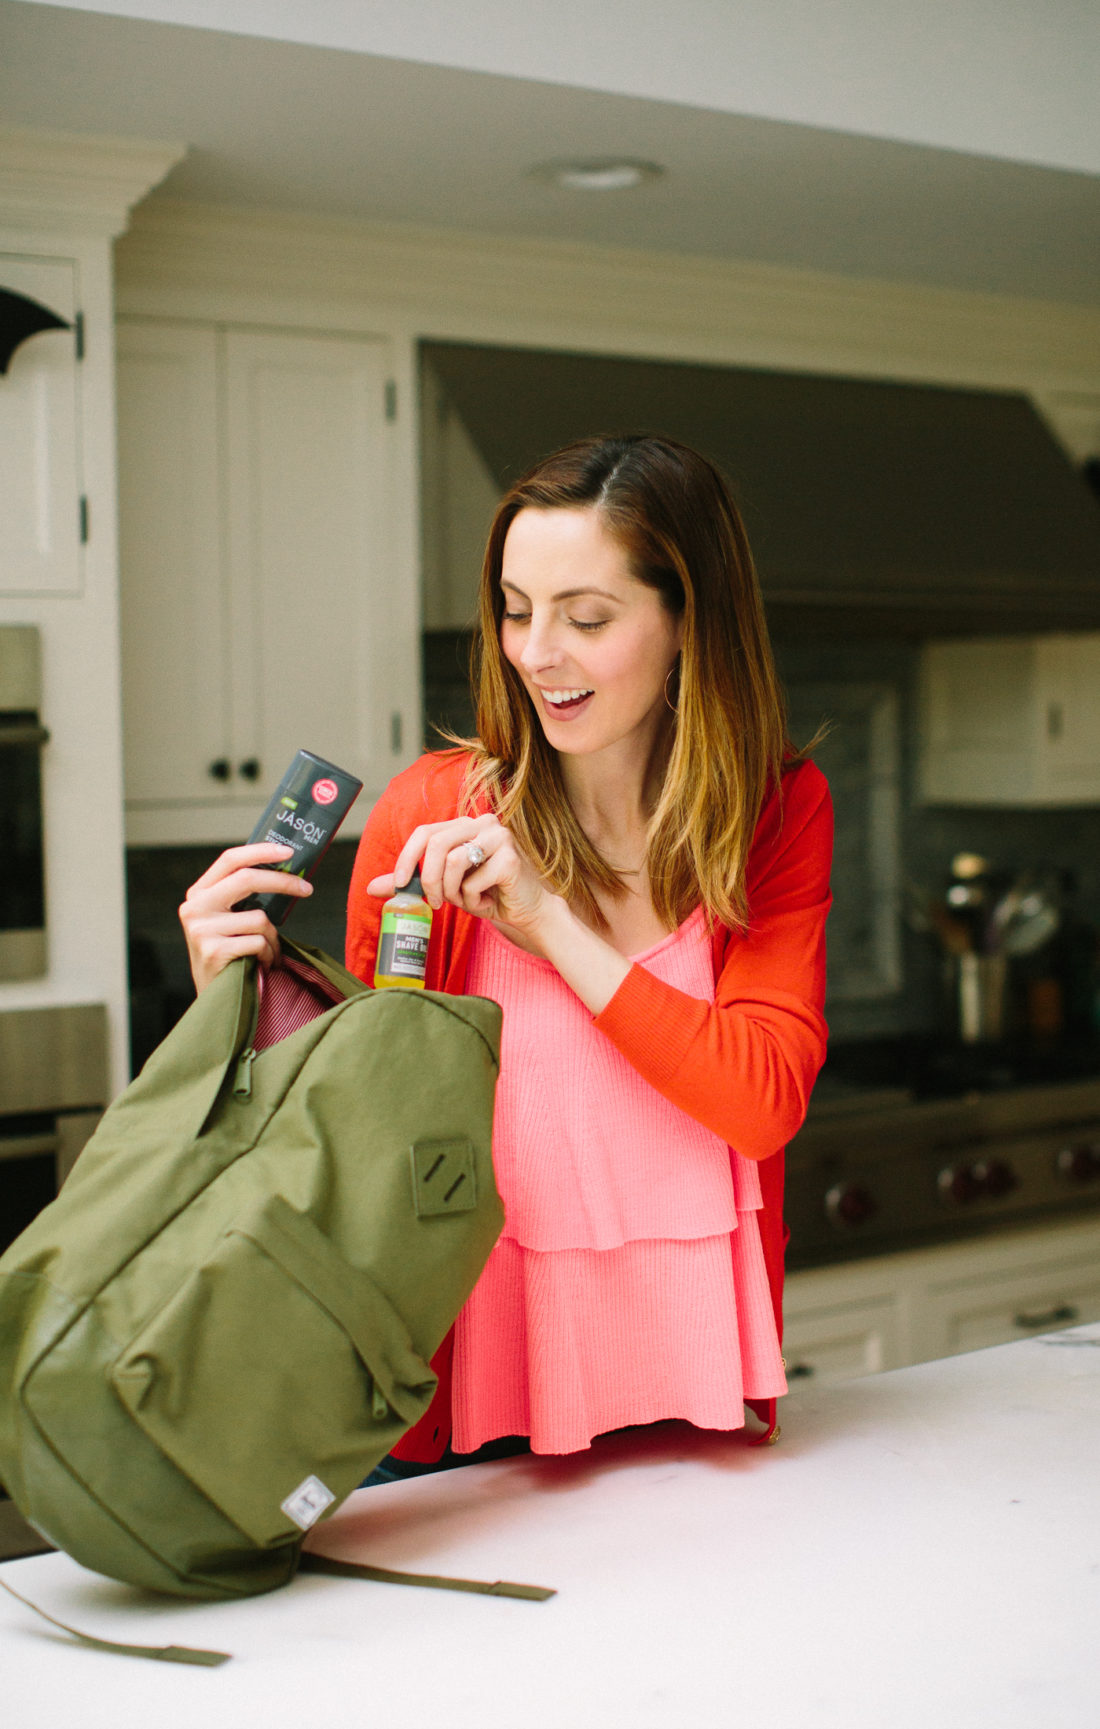 Eva Amurri Martino puts together a fully loaded gym bag for her husband as a gift